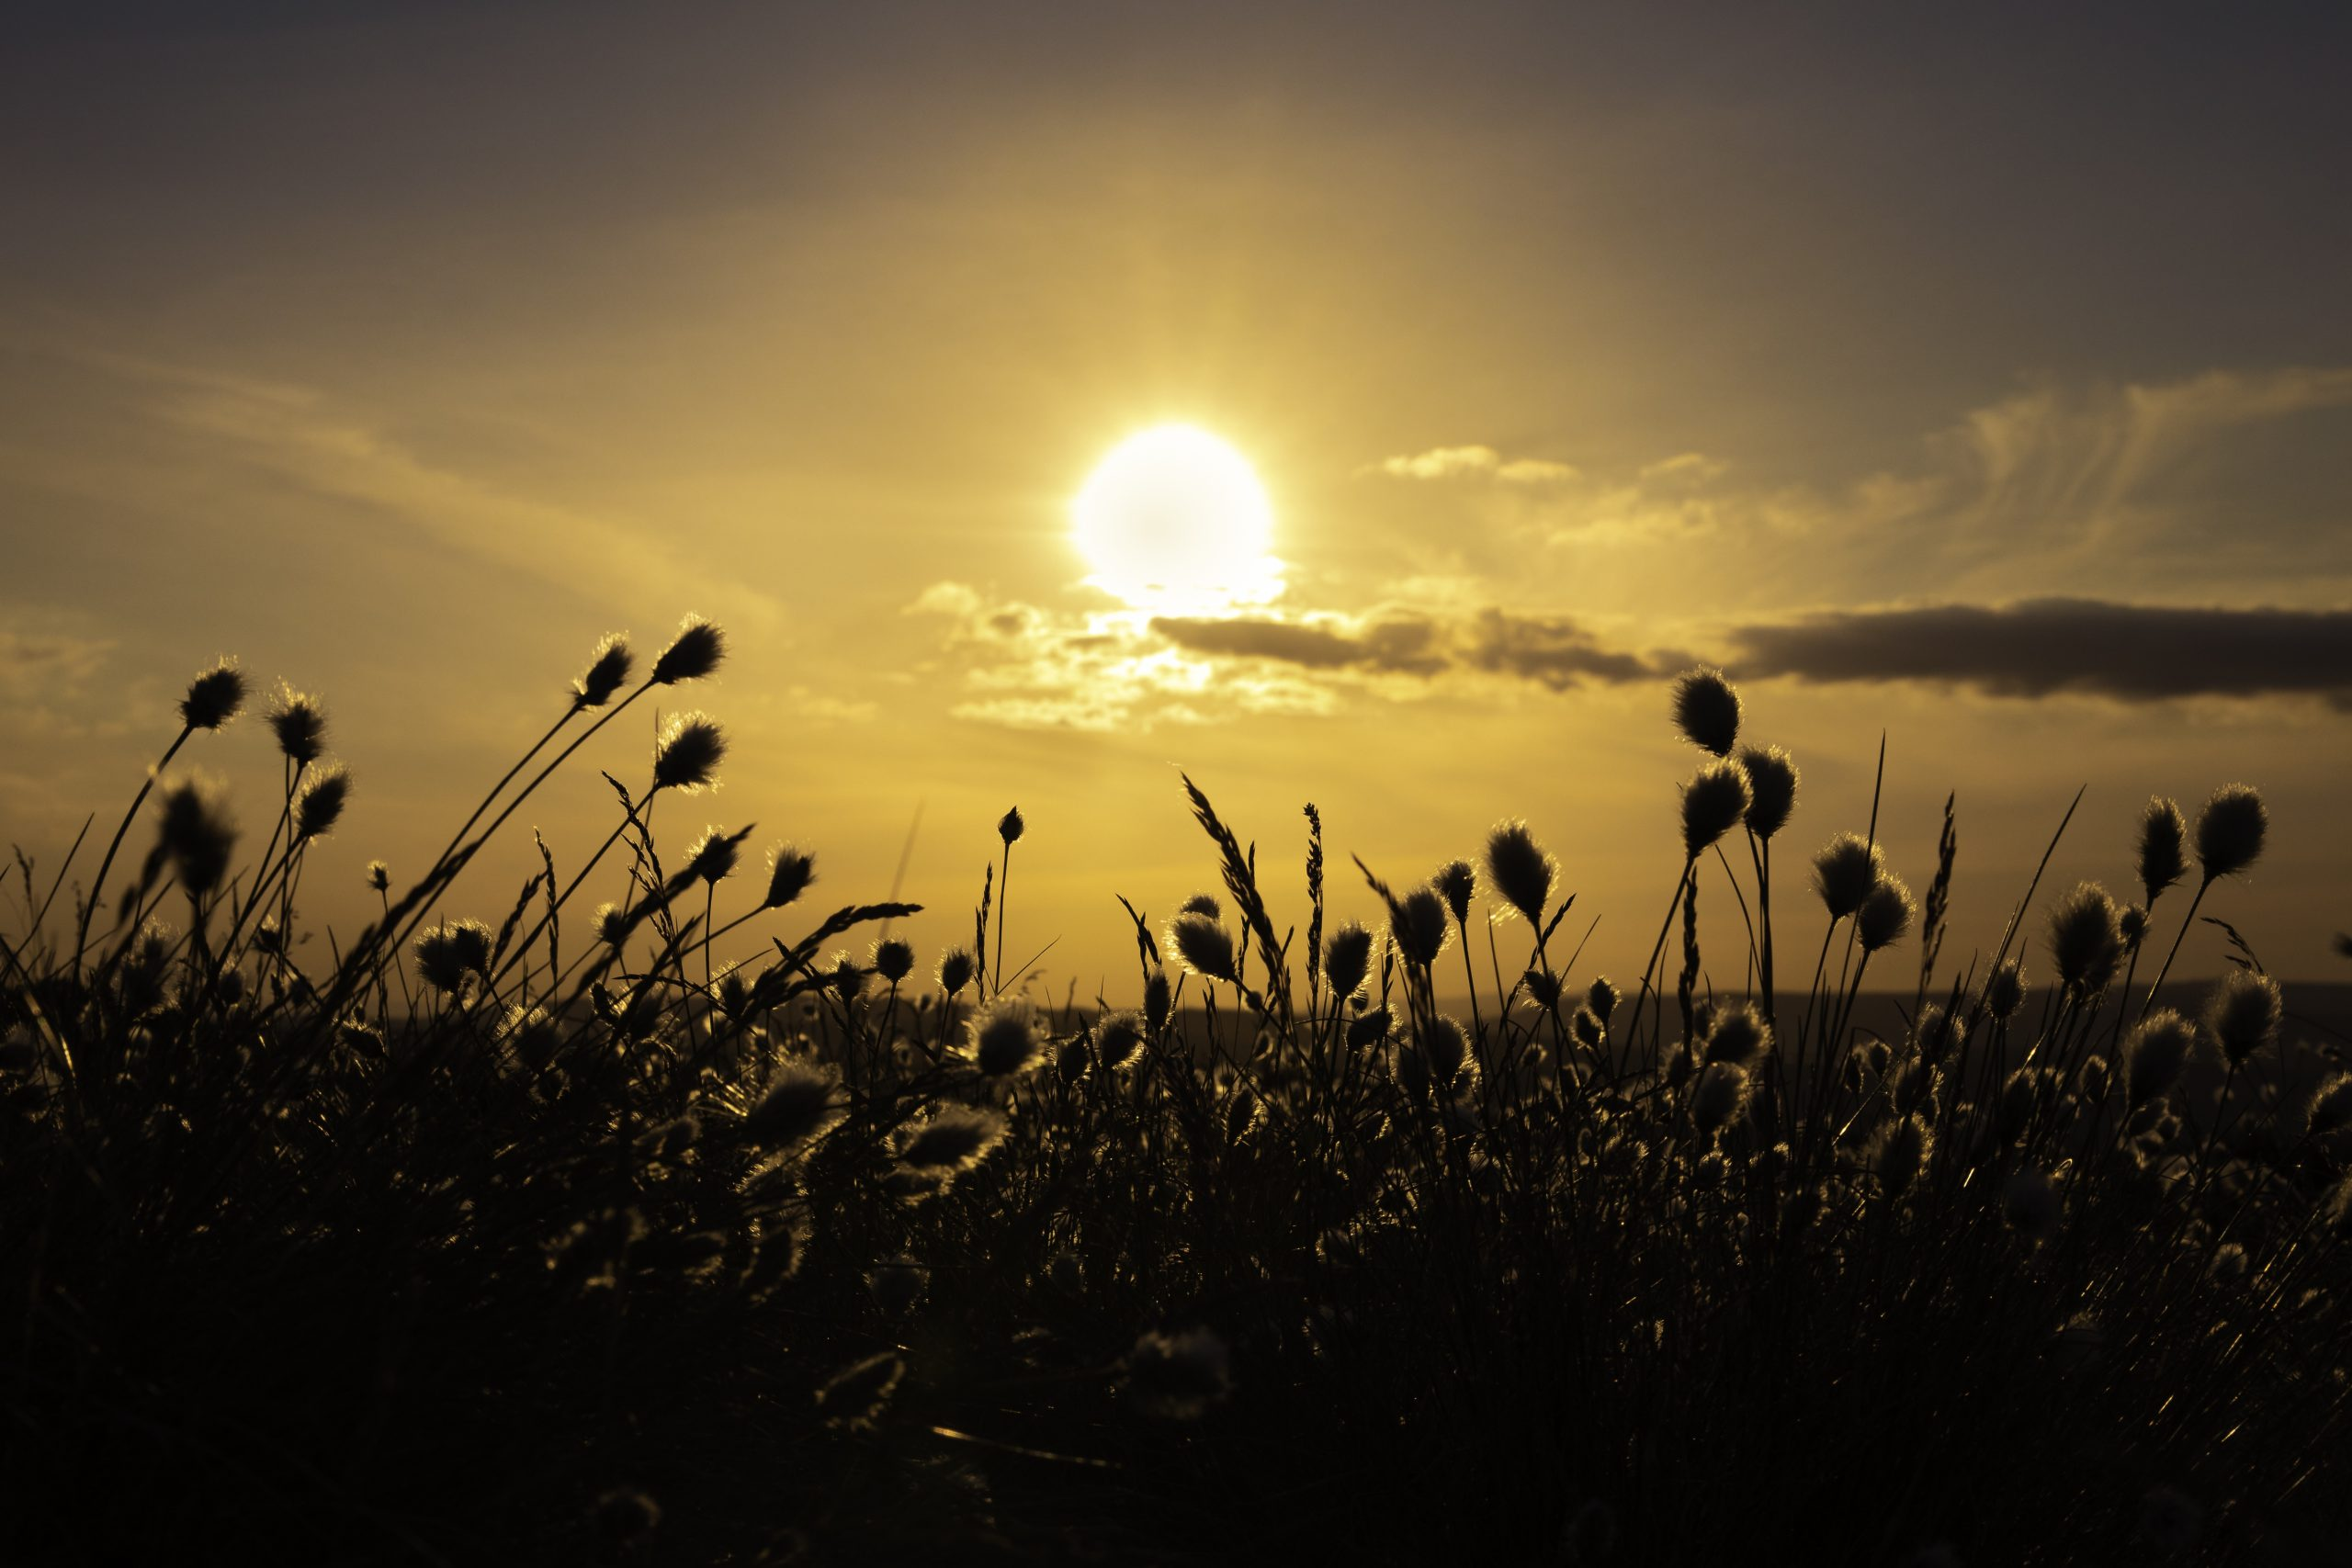 """Stems of cottongrass with their distinctive head resembling a ball of cotton silhouetted against the setting sun. on a guided walk in Yorkshire"""" width="""""""" height="""